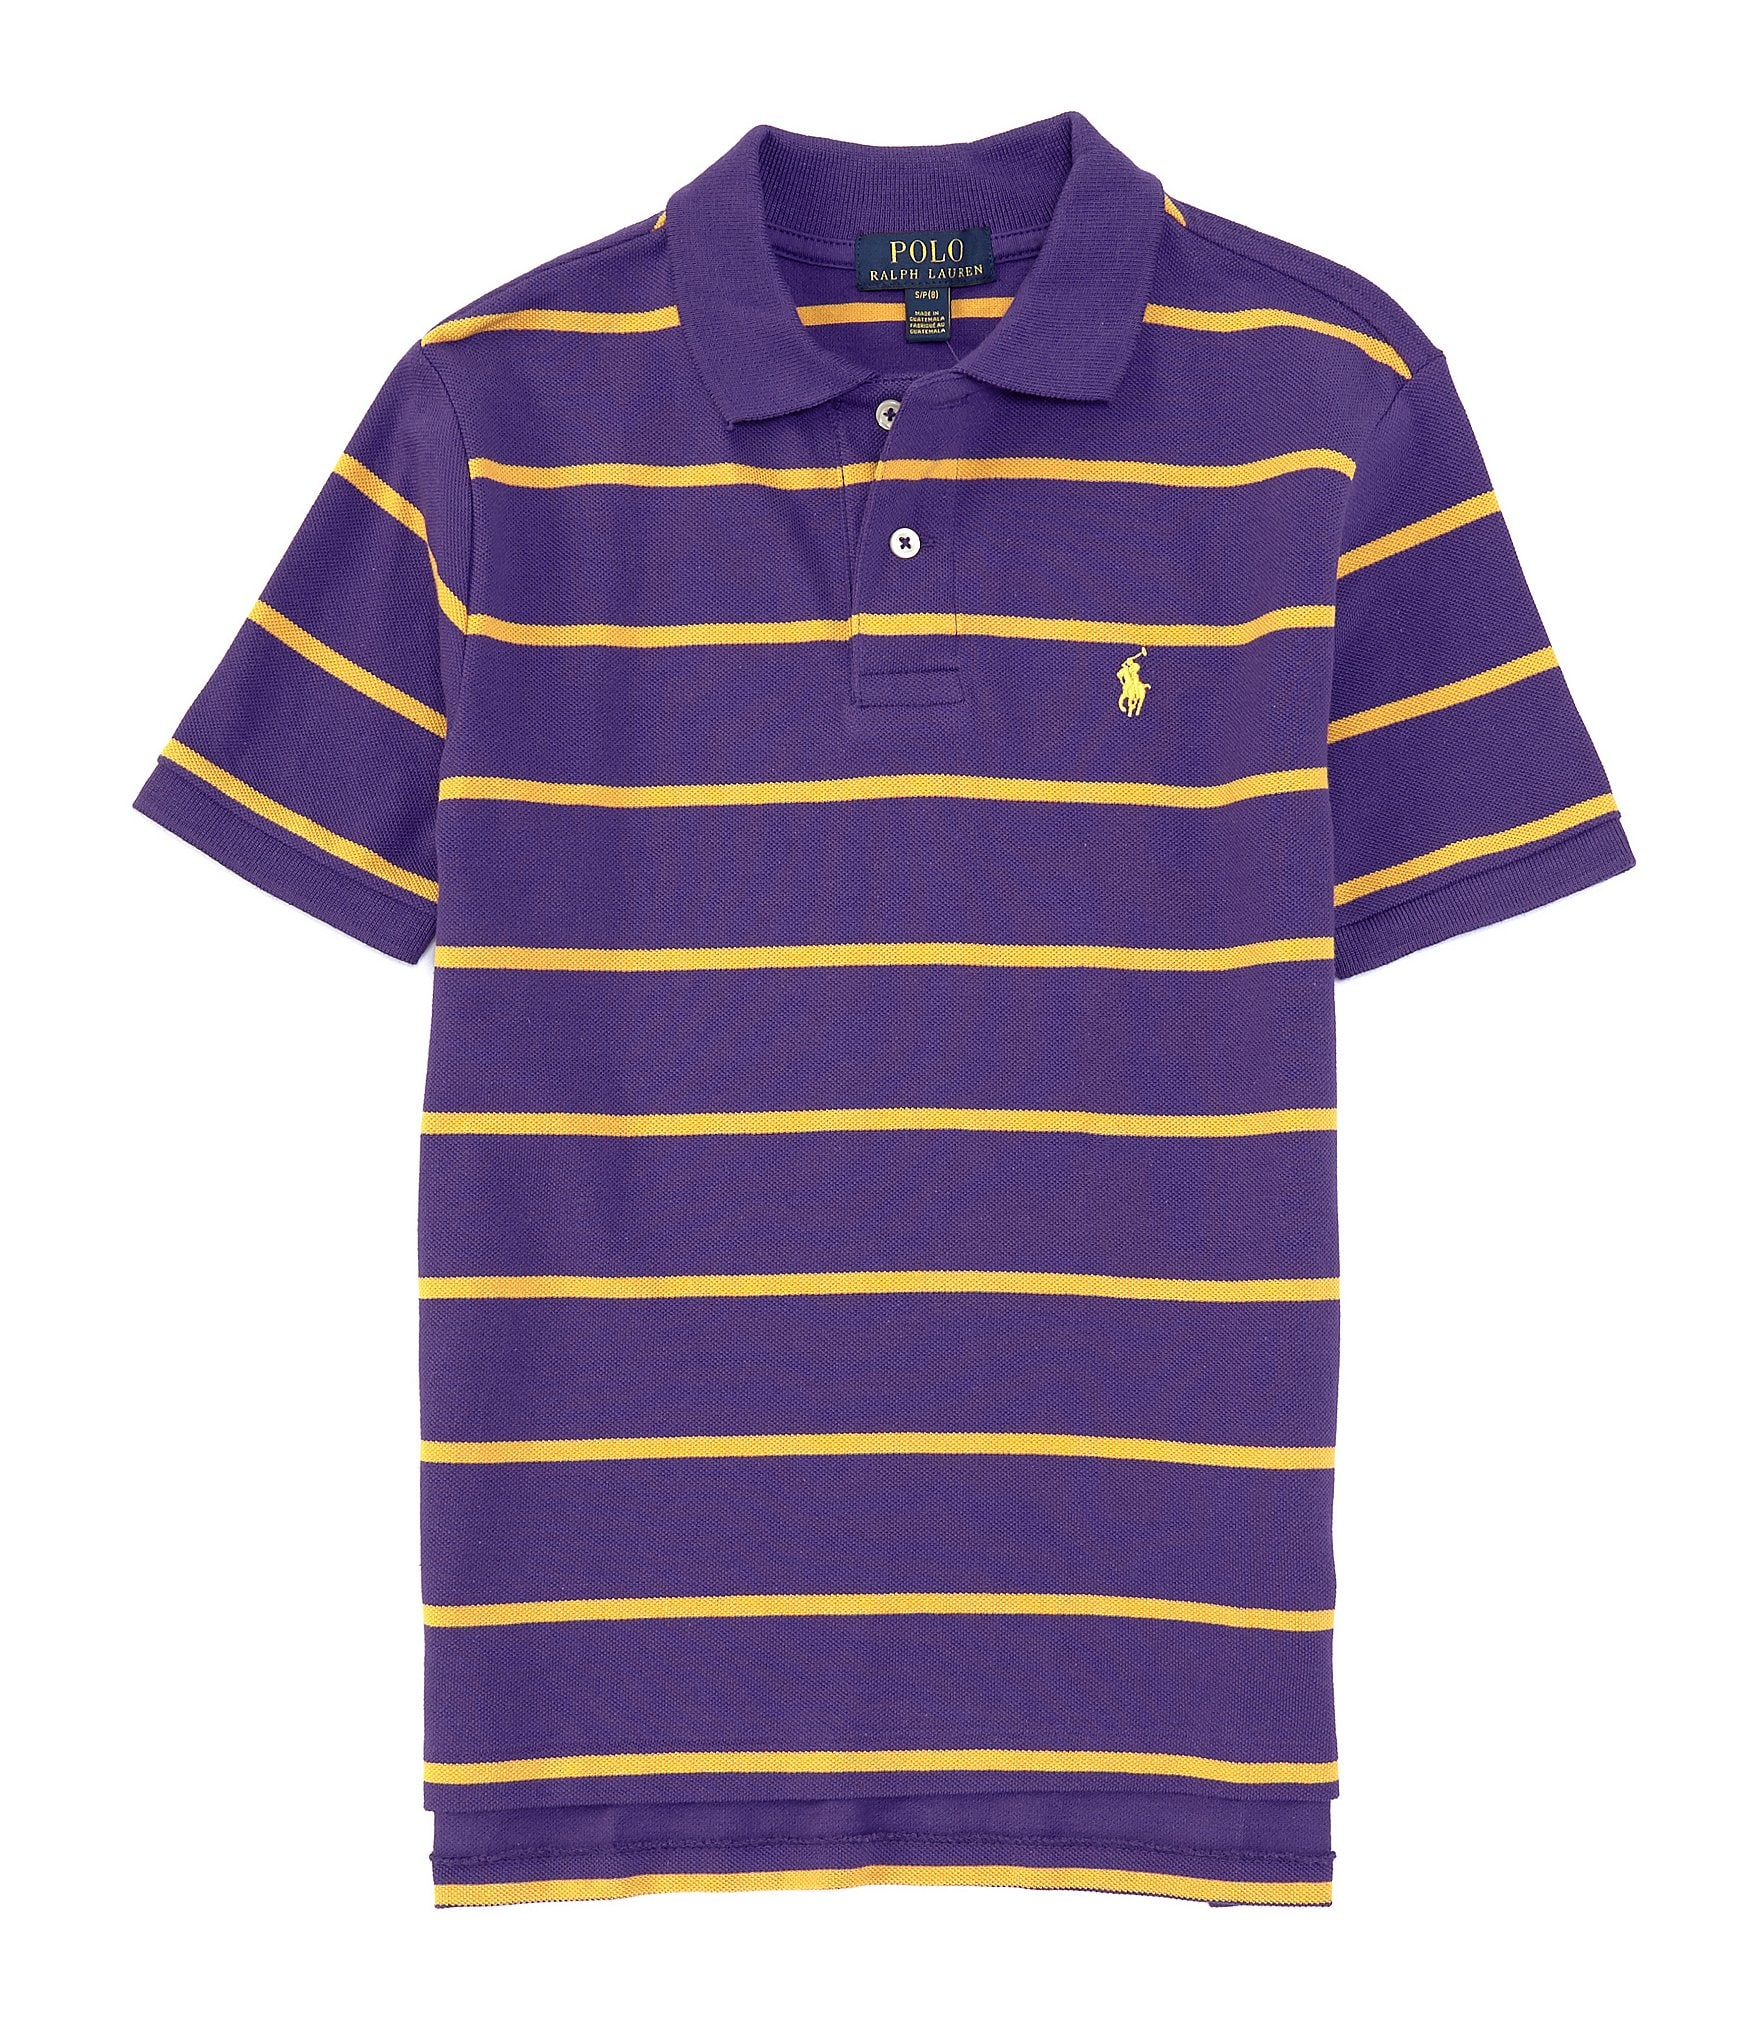 d2d1d4473 Ralph Lauren Childrenswear Big Boys 8-20 Short-Sleeve Collegiate Striped  Mesh Polo Shirt